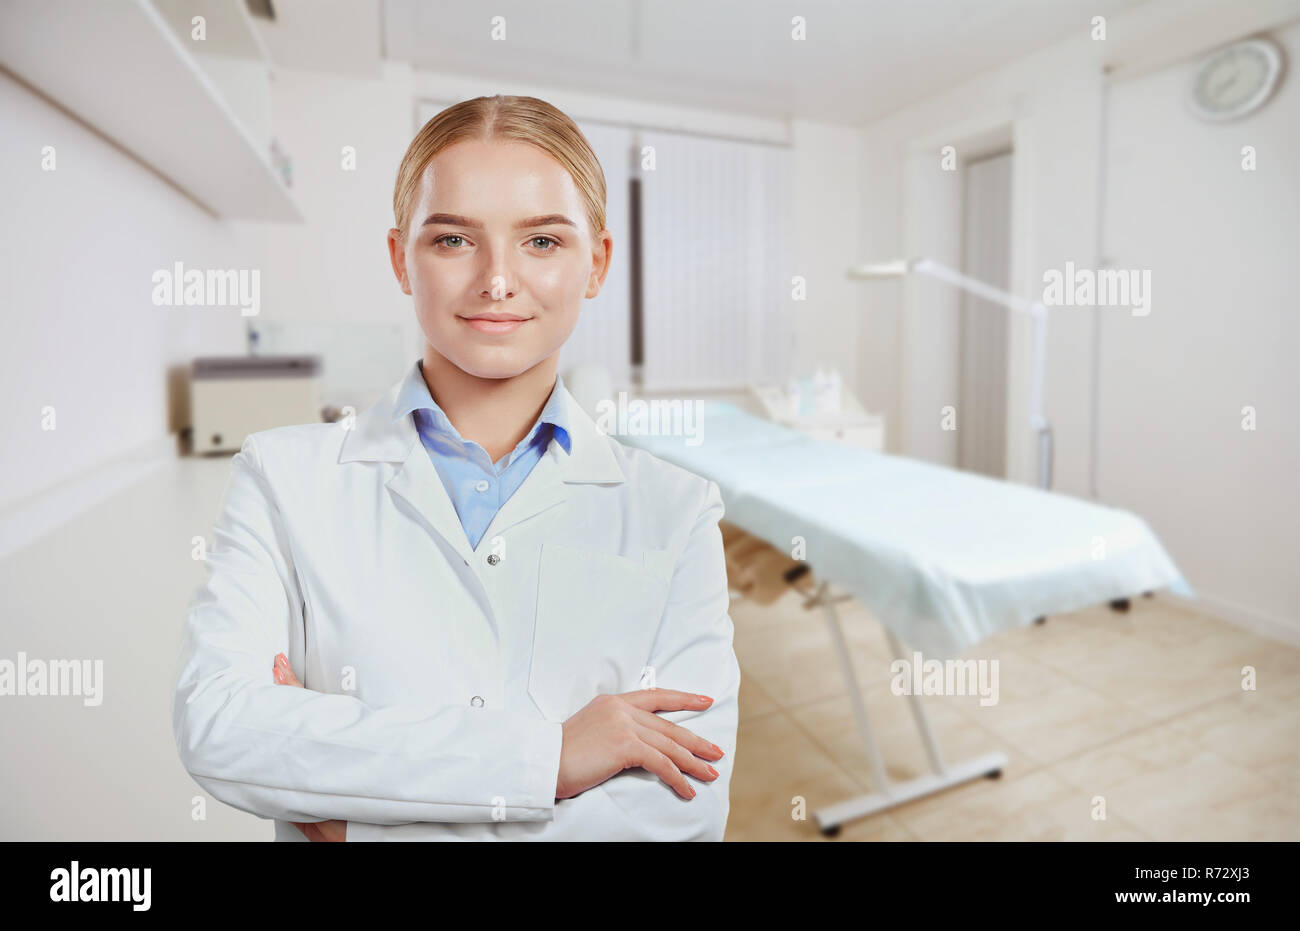 Cosmetologist, doctor woman on the background of the office.  - Stock Image